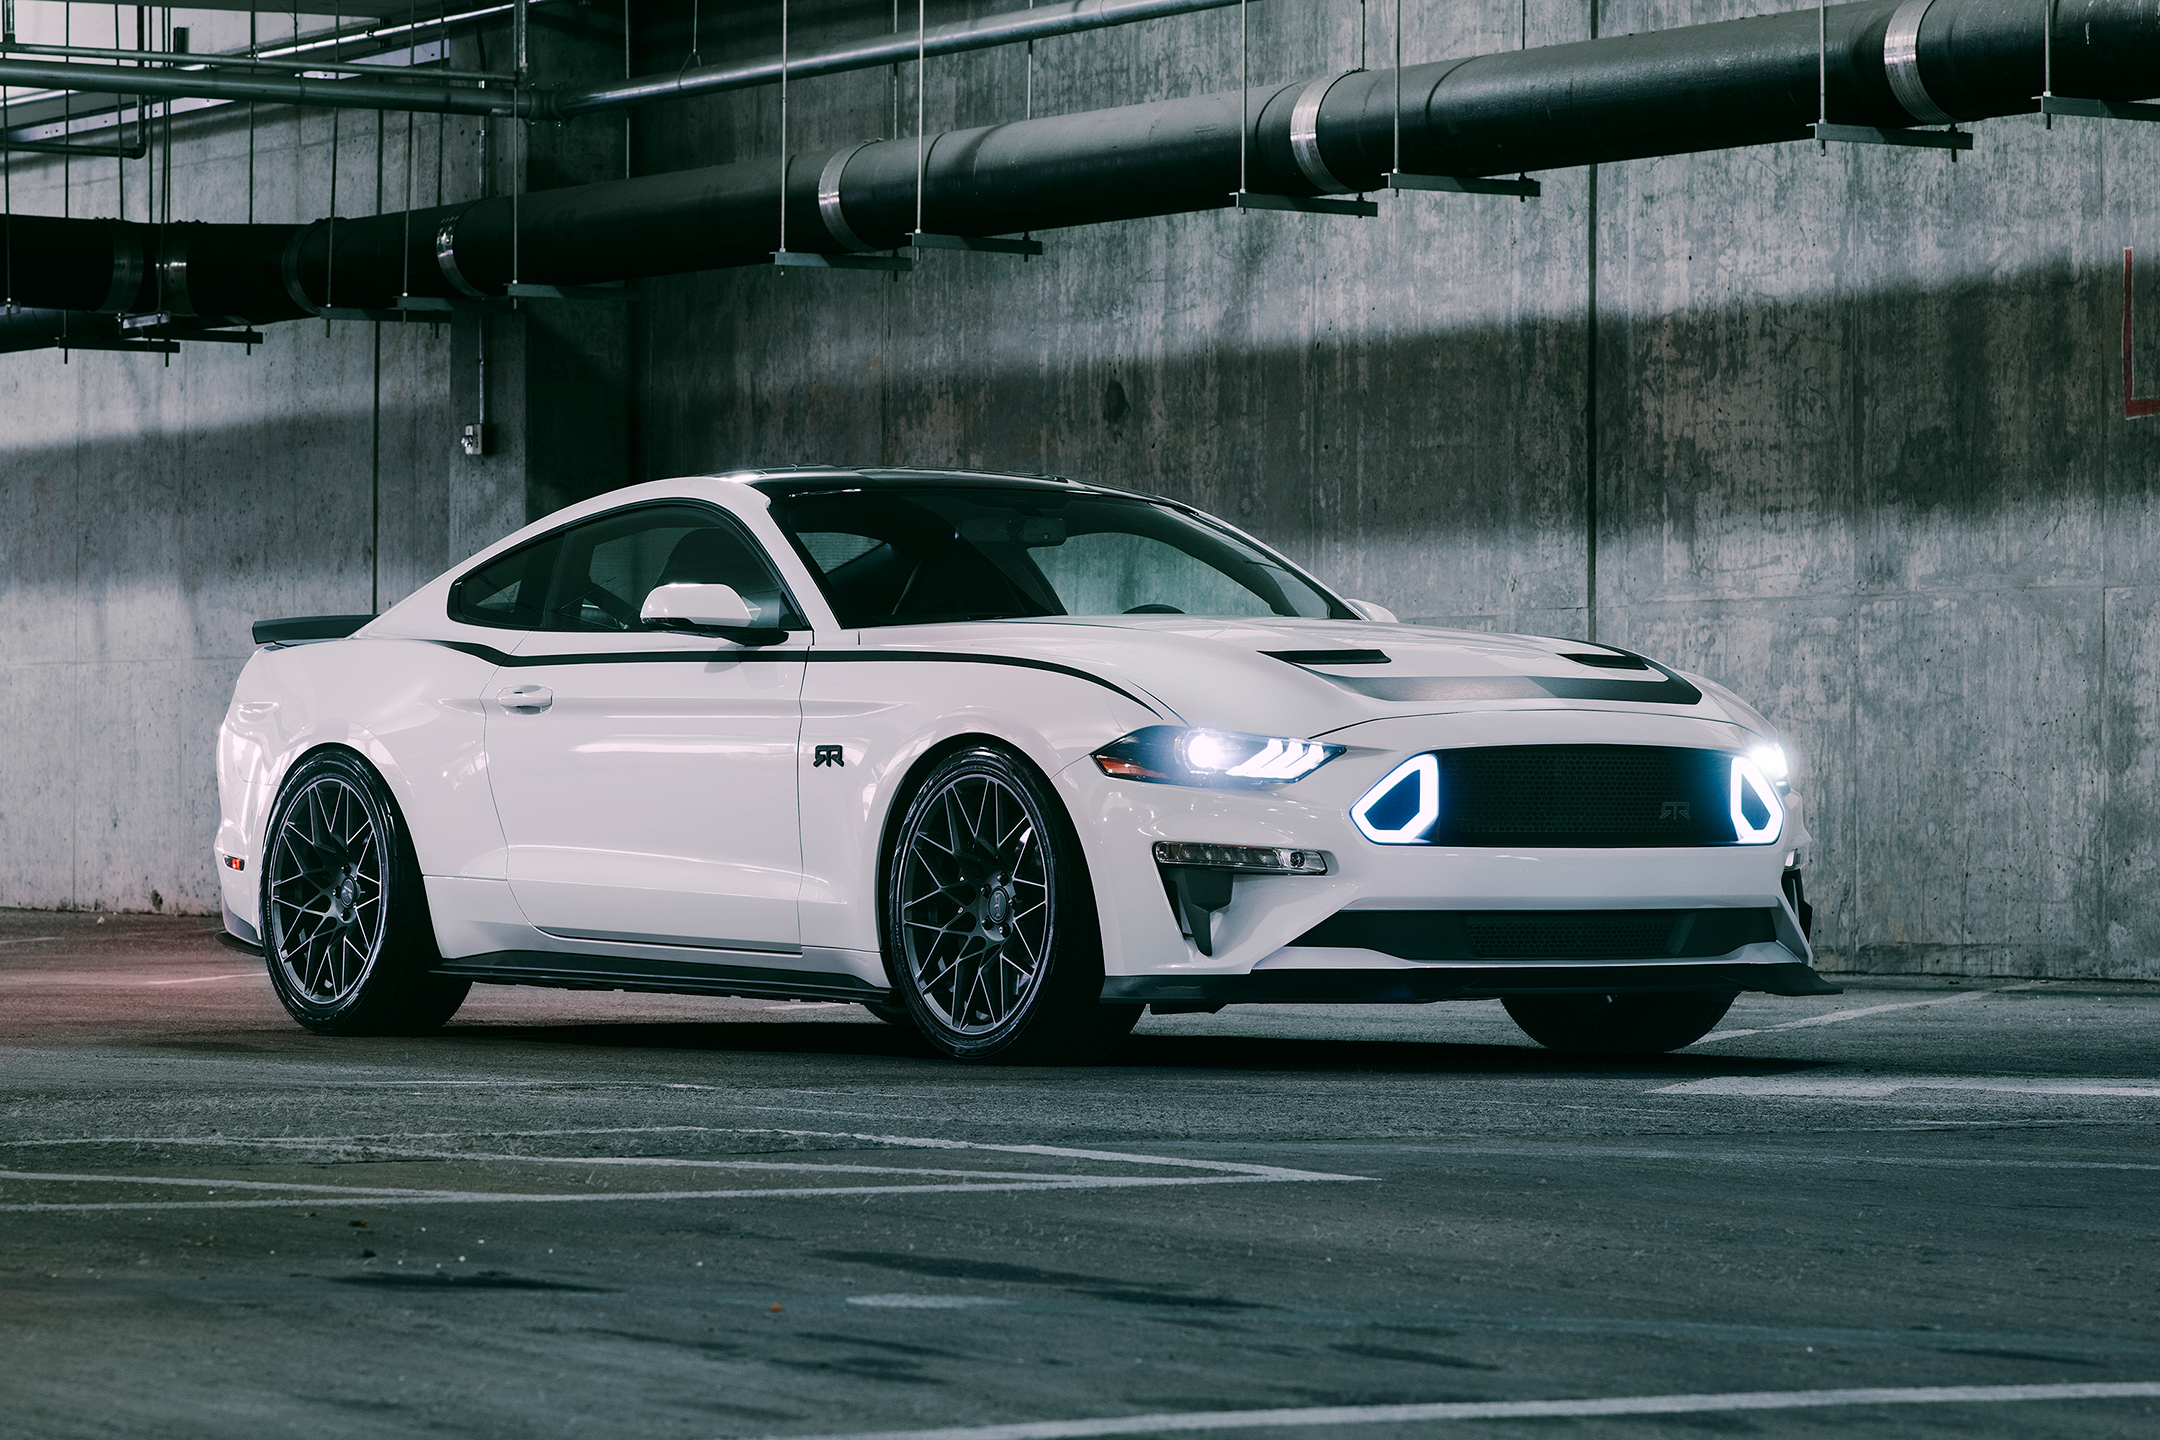 Ford Mustang RTR - 2018 - front side-face / profil avant